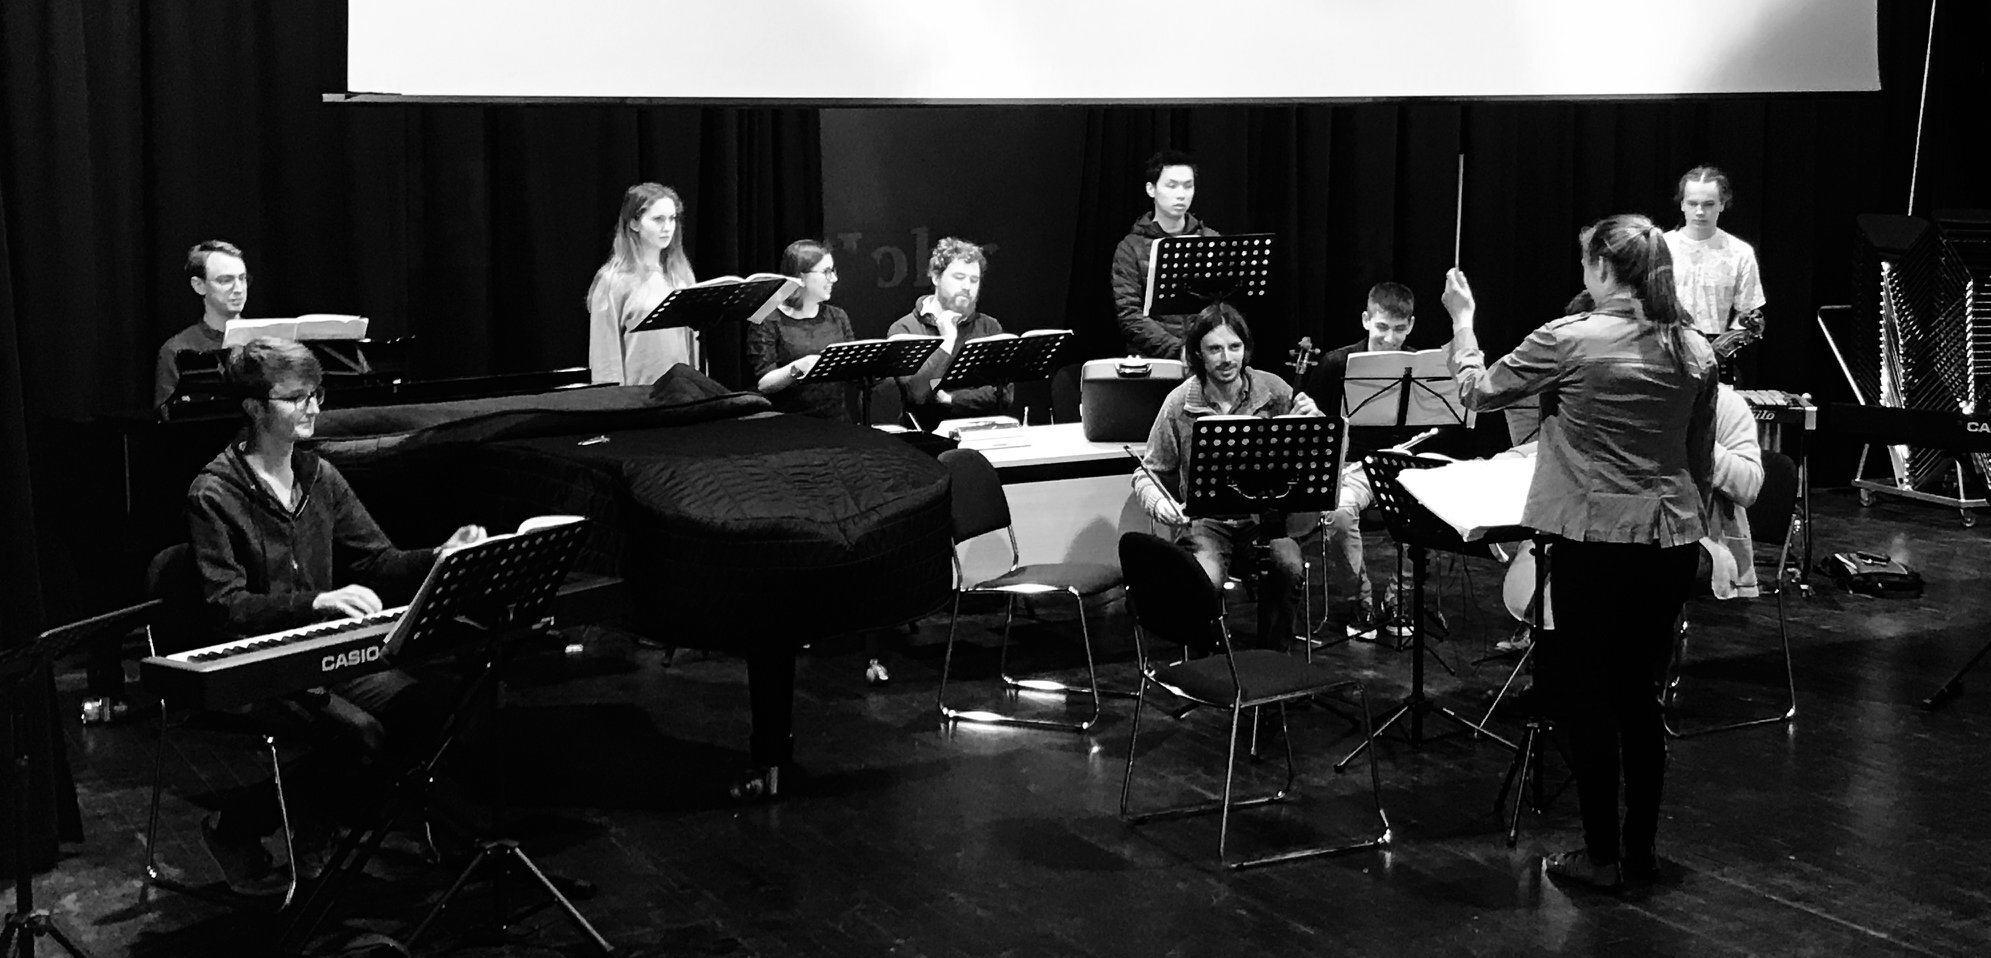 Rehearsing for Steve Reich and Beryl Korot's  The Cave  in the Auditorium at St John's College, Oxford